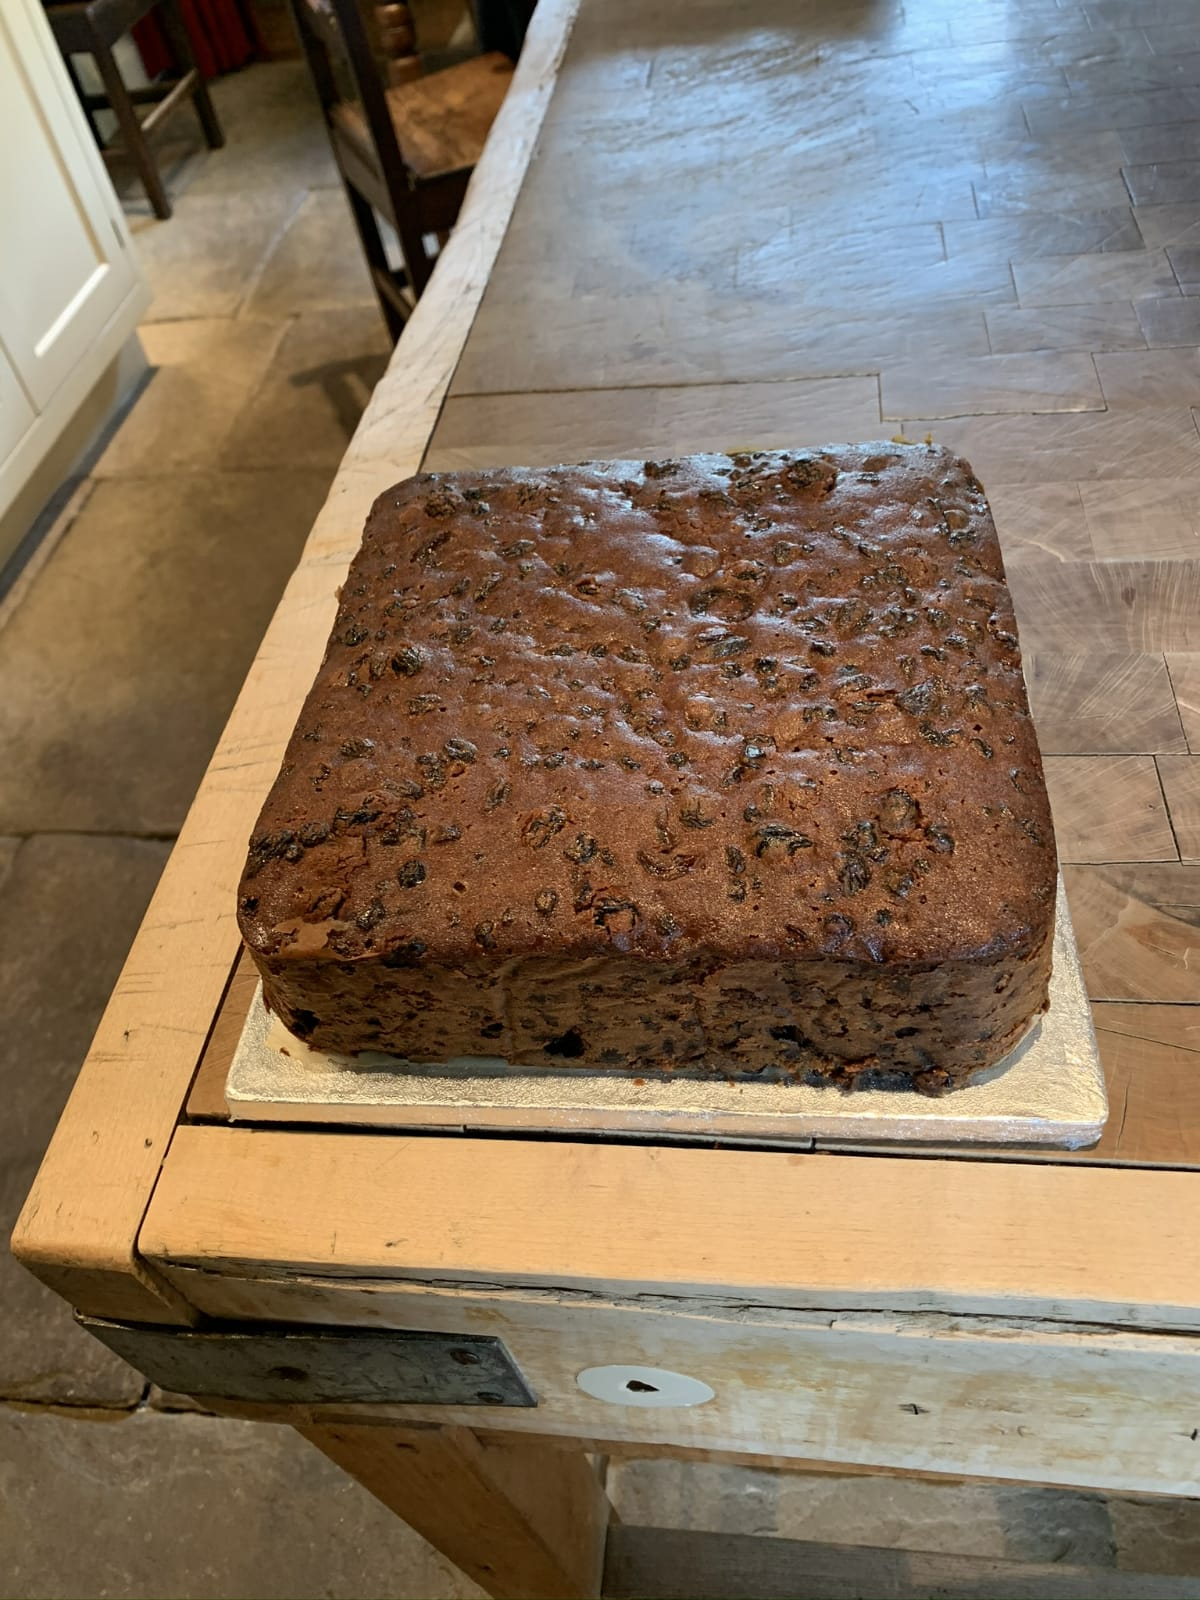 The cake is ready, removed from the tin and placed on a board ready for serving